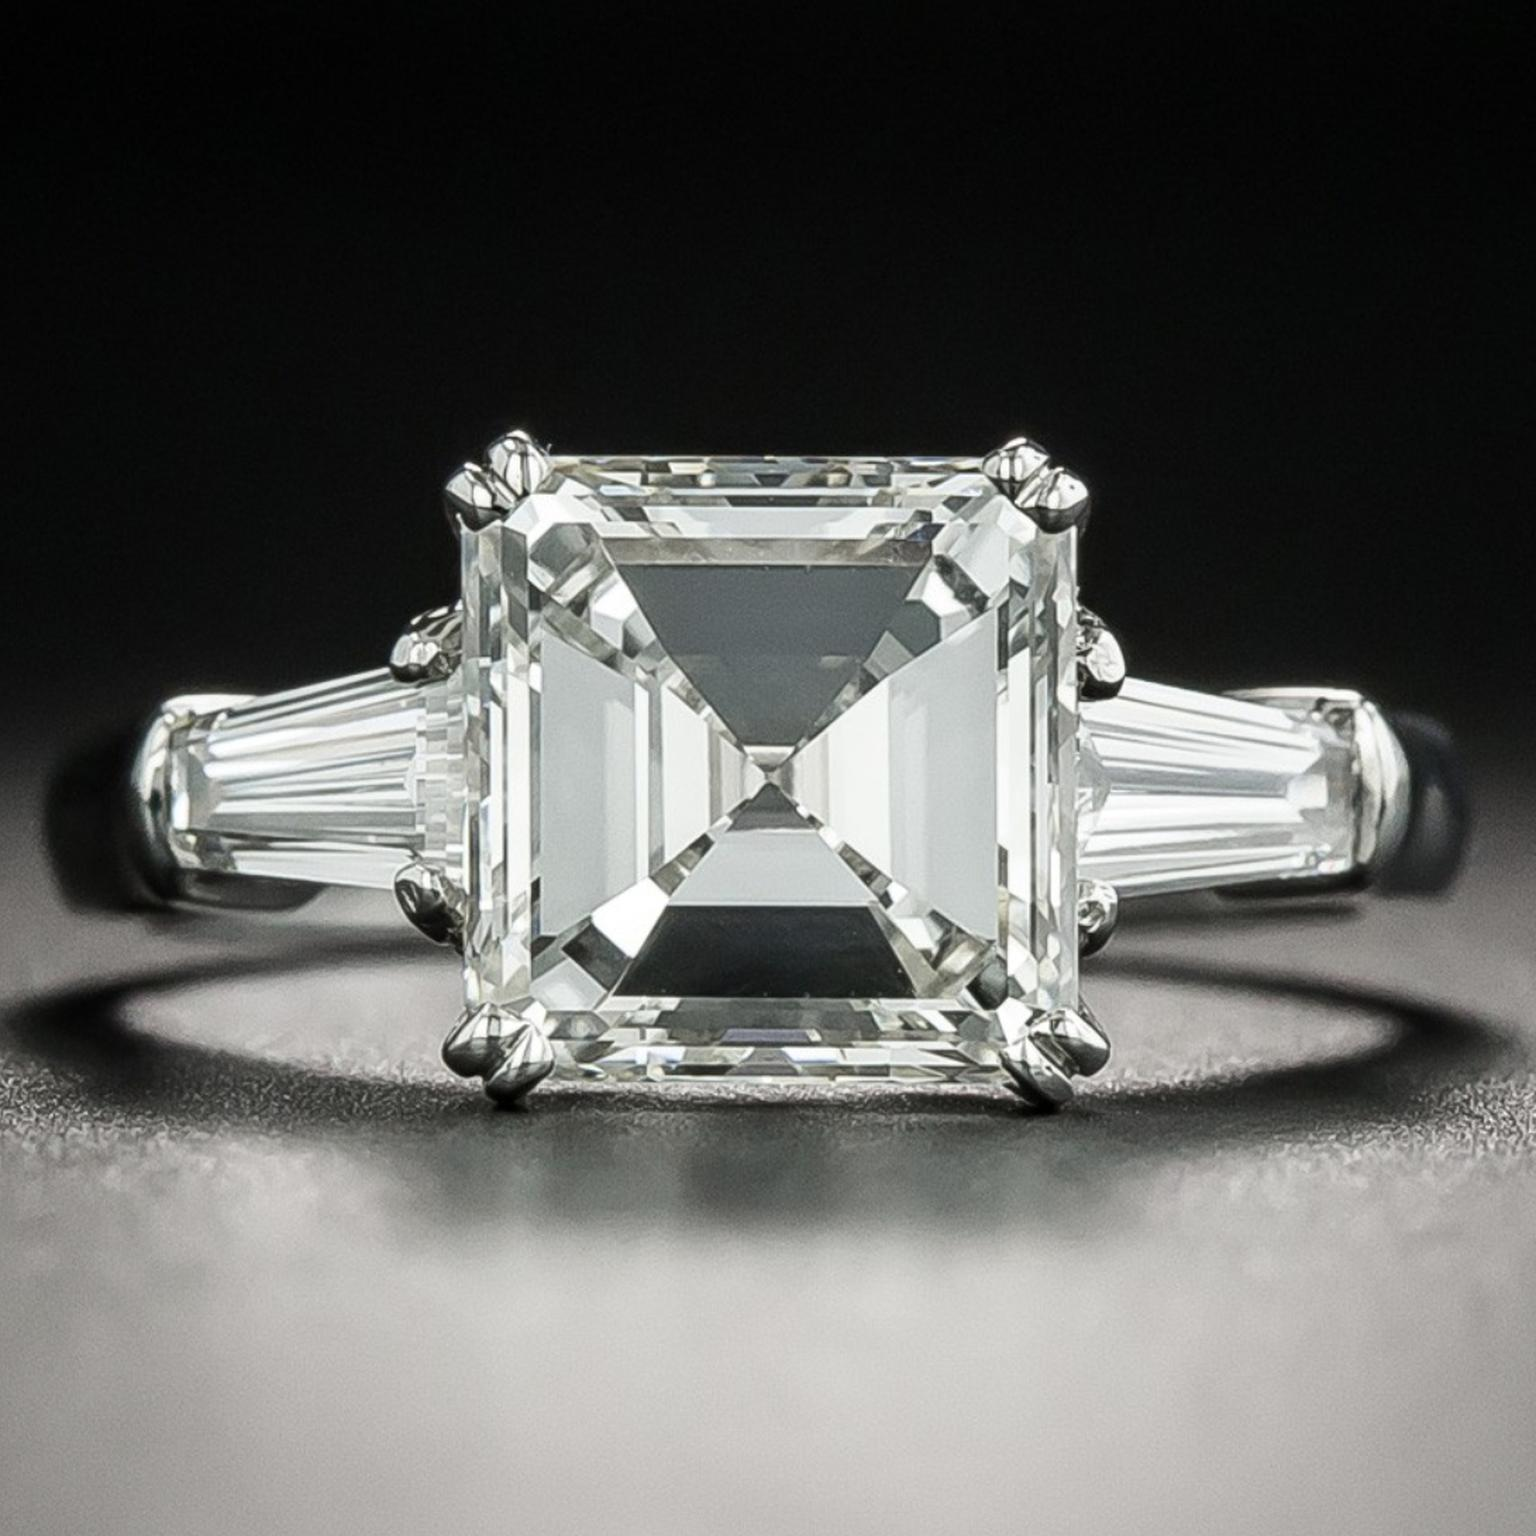 Emerald cut diamond engagement ring sold by Lang Antiques